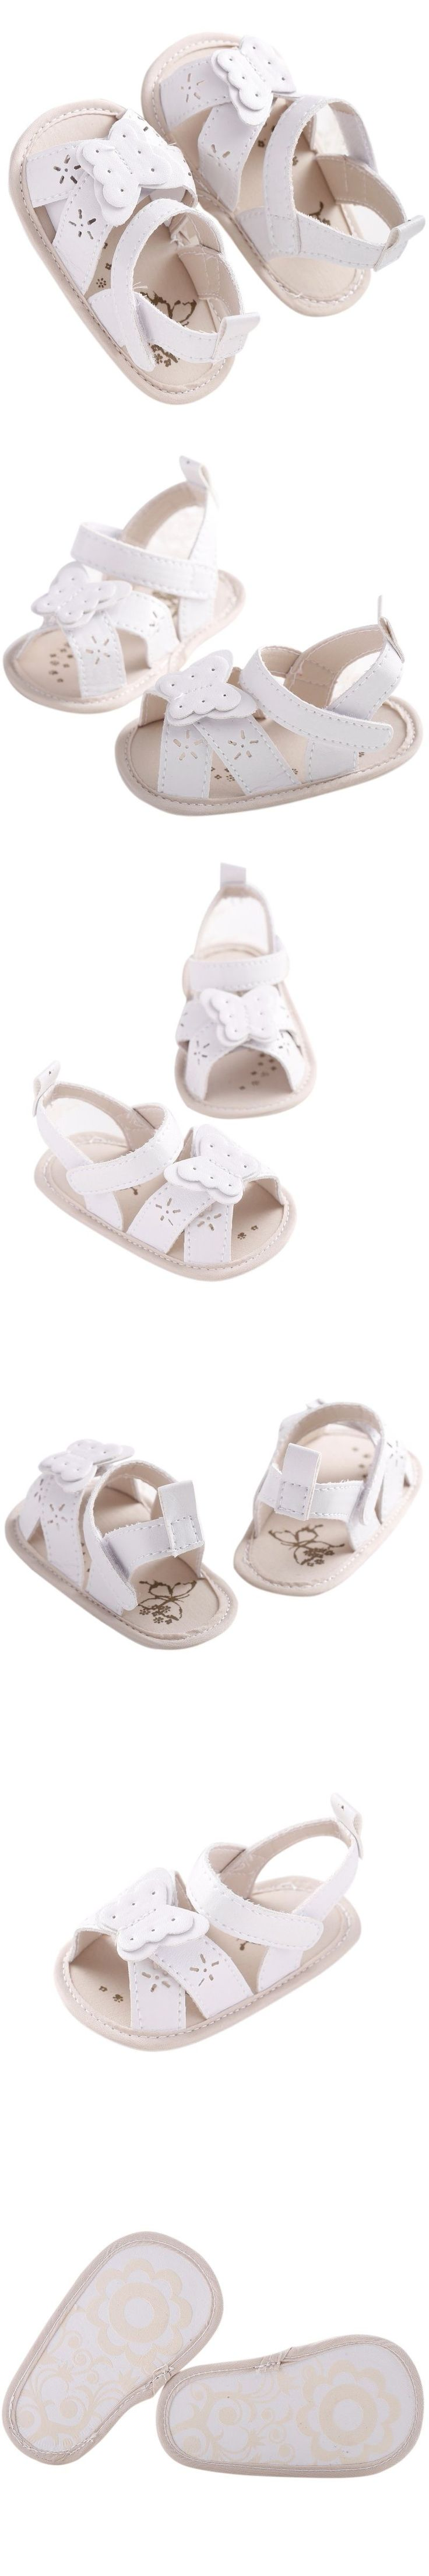 2017 Newest Fashion Summer Cute Baby Girls Cute Butterfly Solid Color Sandals Toddlers Kids Toddler Infant Girls Shoes